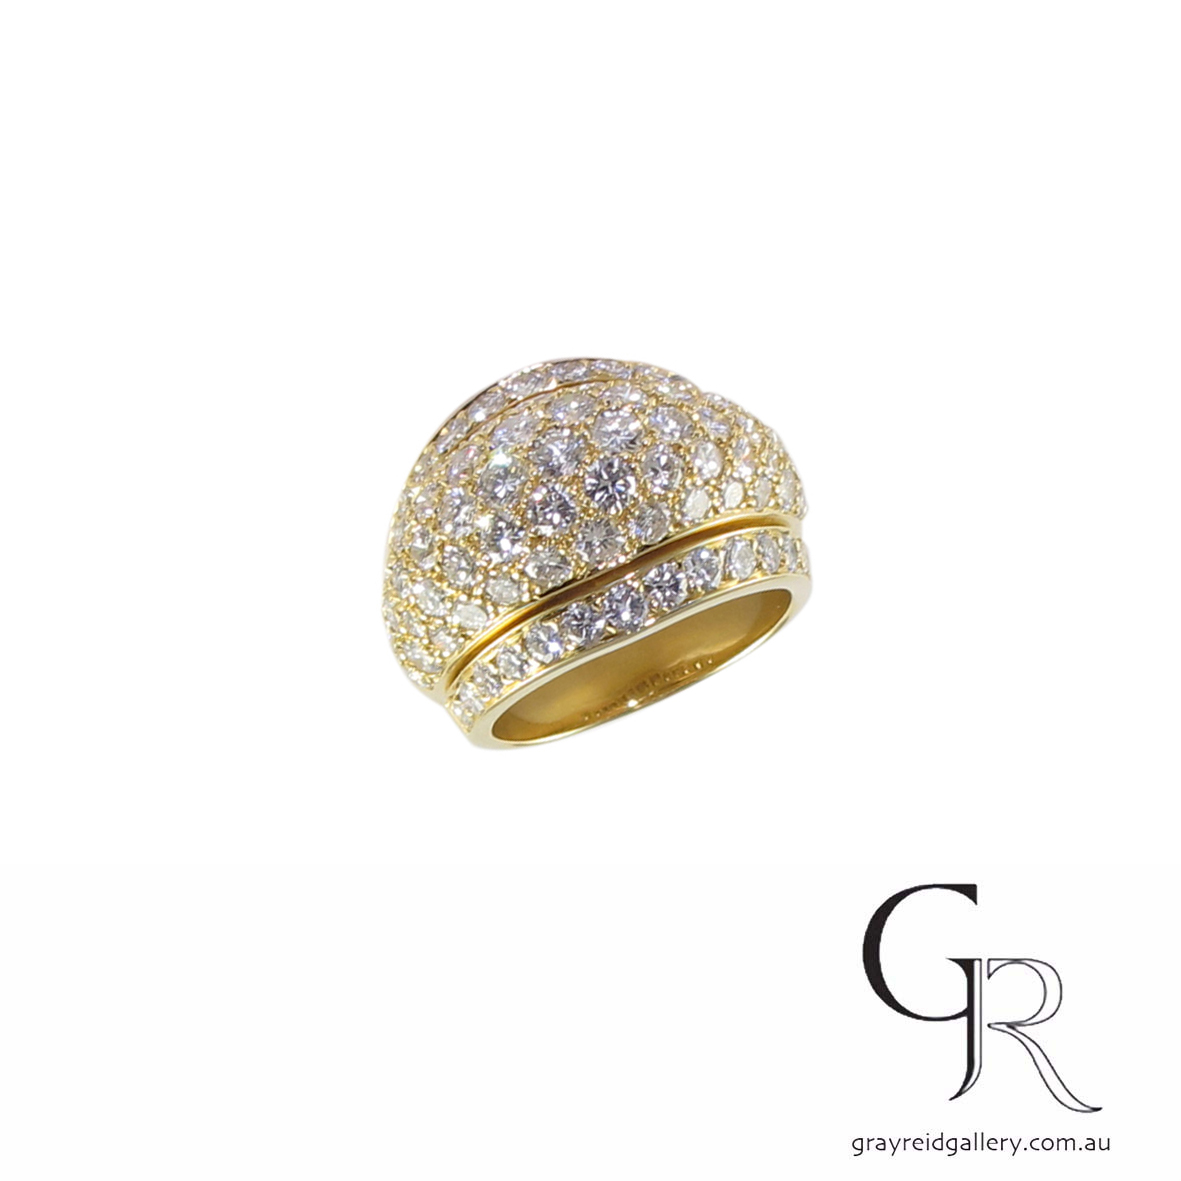 Diamond-cocktail-ring-JAI37.jpg